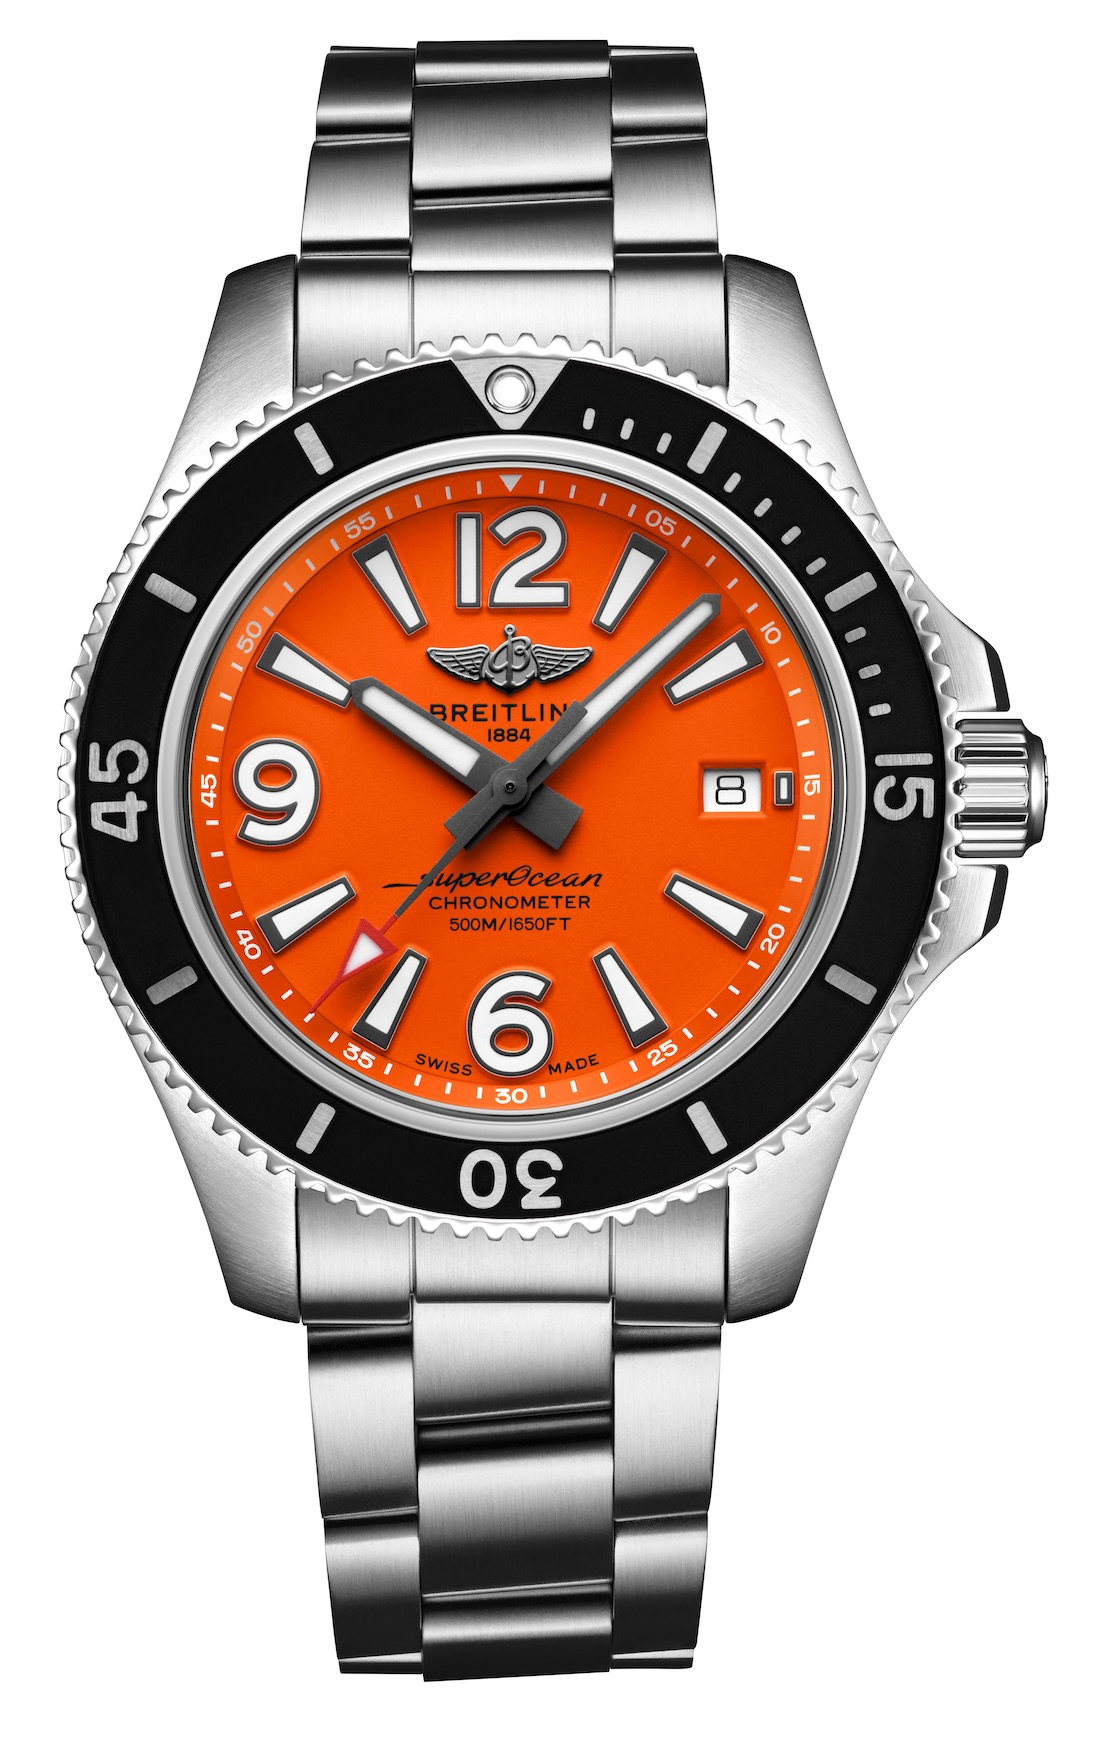 17_Superocean 42 with orange dial and stainless-steel bracelet_22857_19-03-19.jpeg